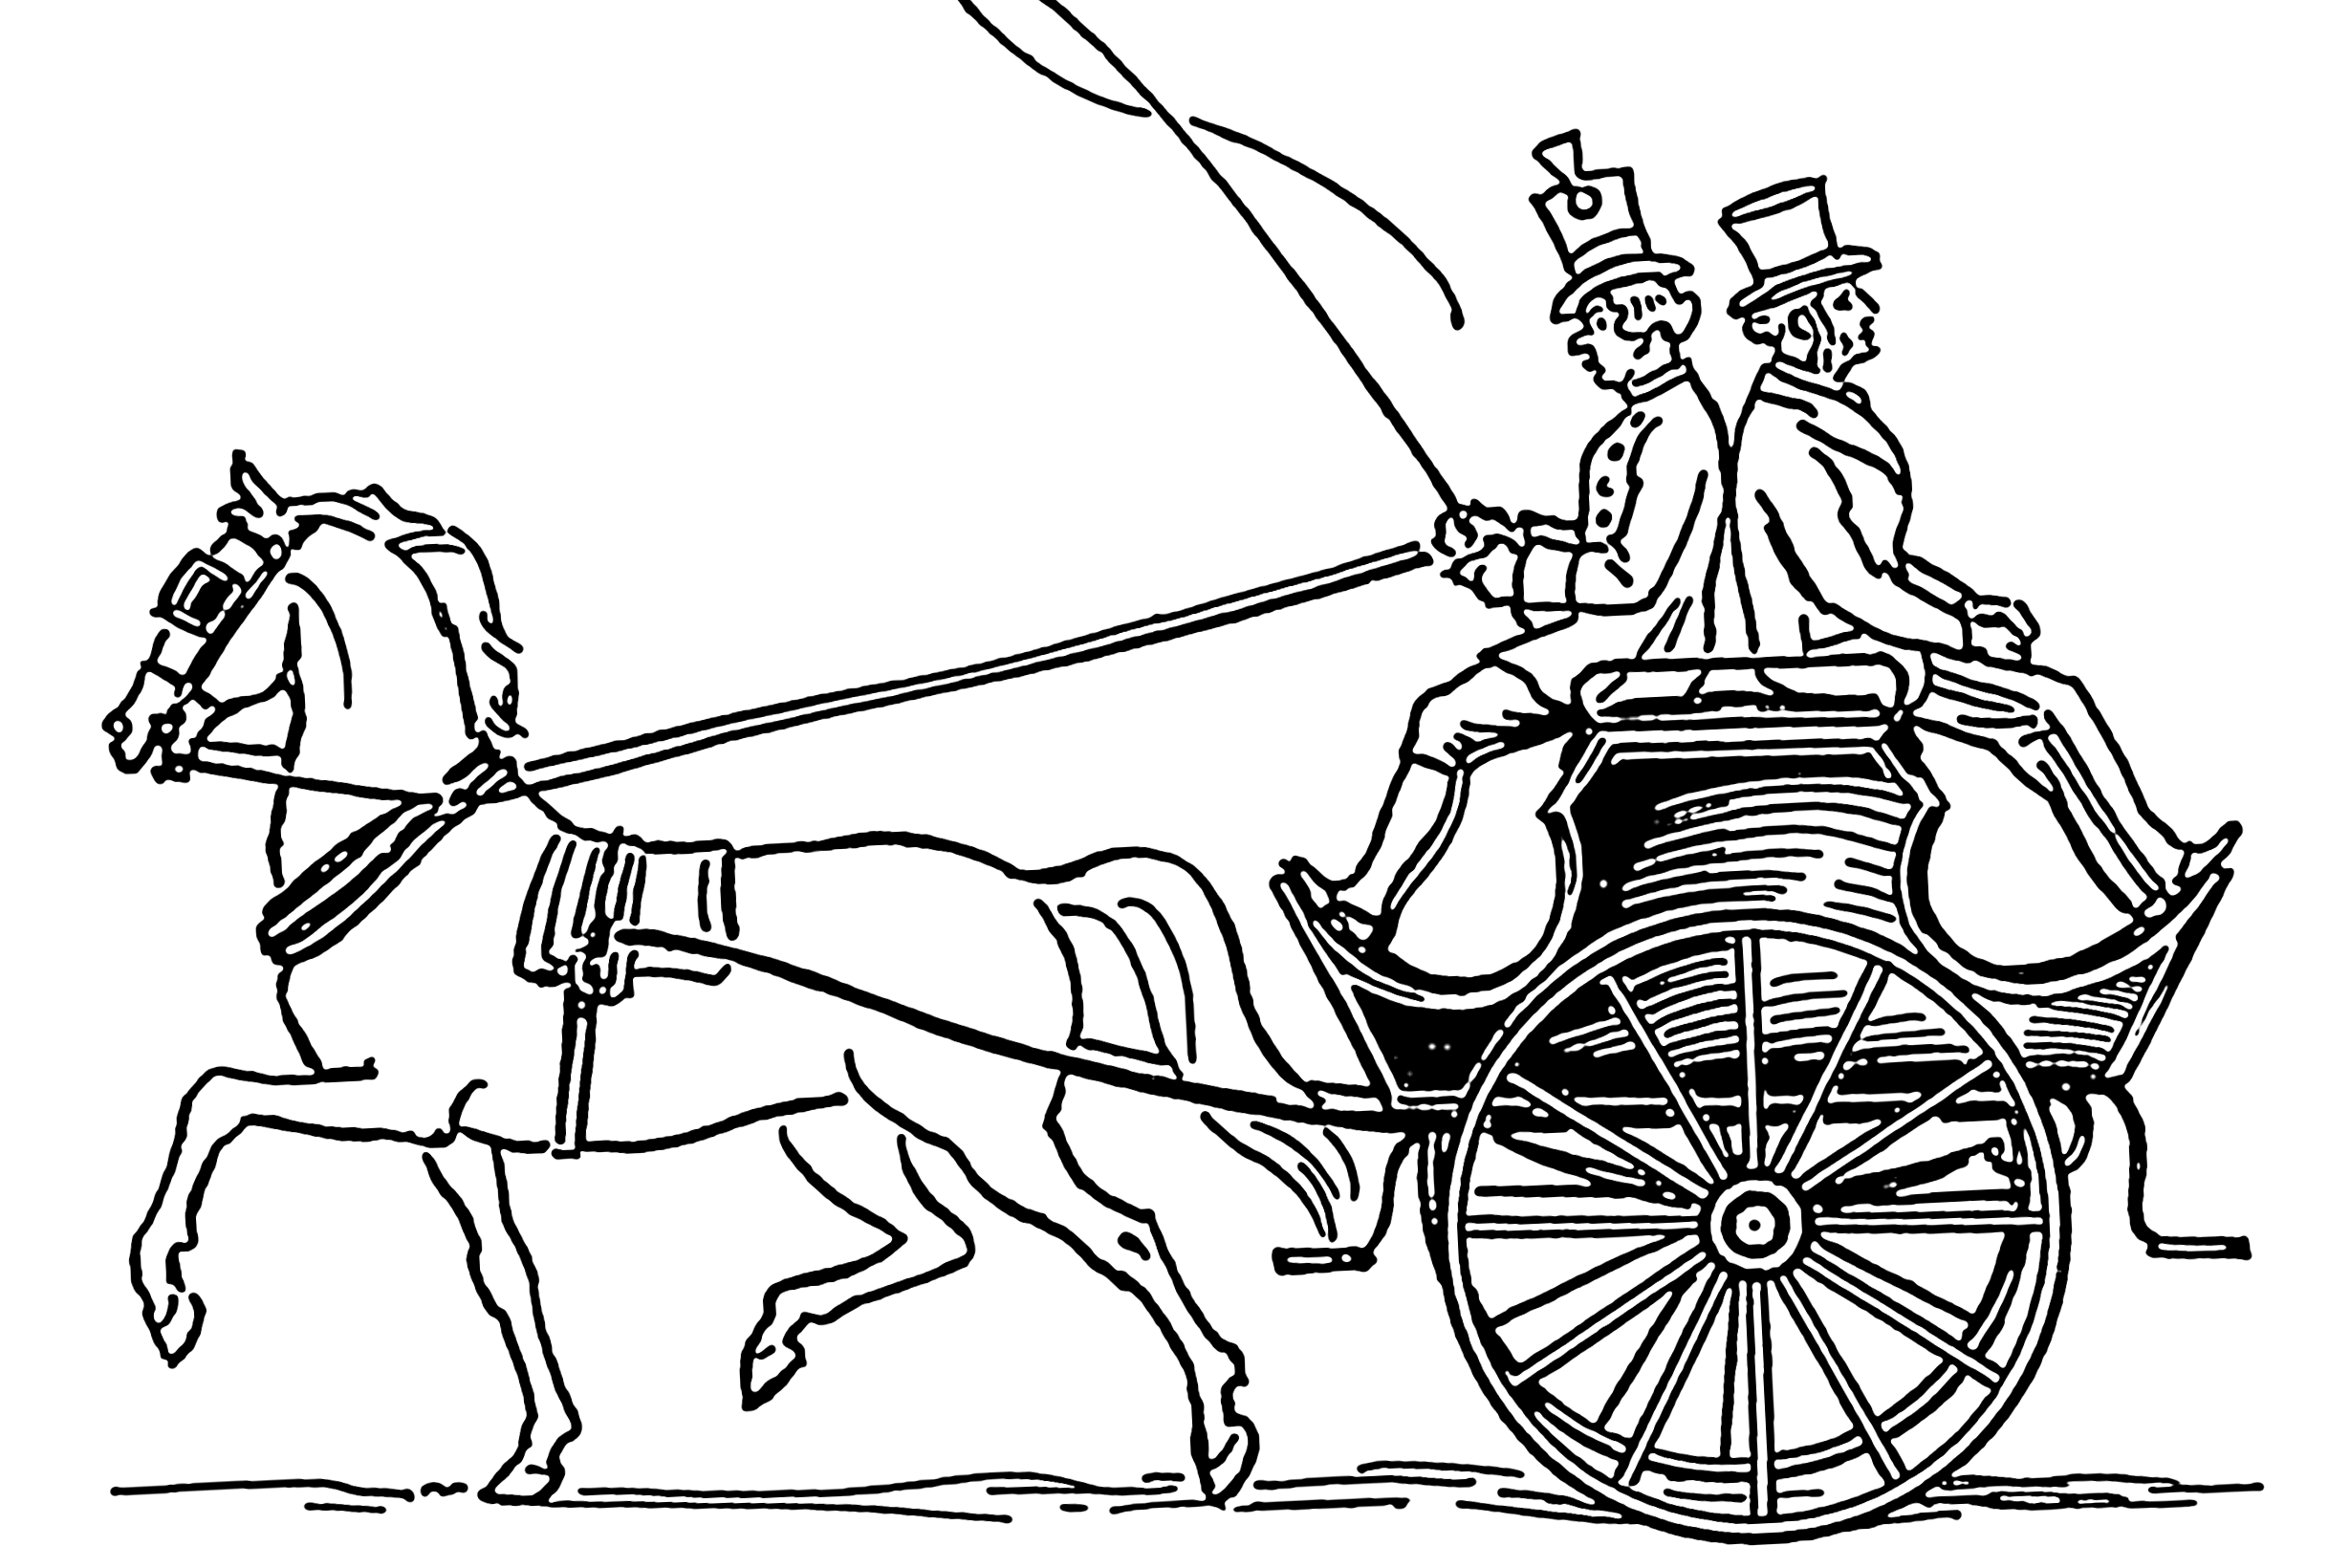 Coloring Pages Prairie Animals : File dogcart psf wikimedia commons